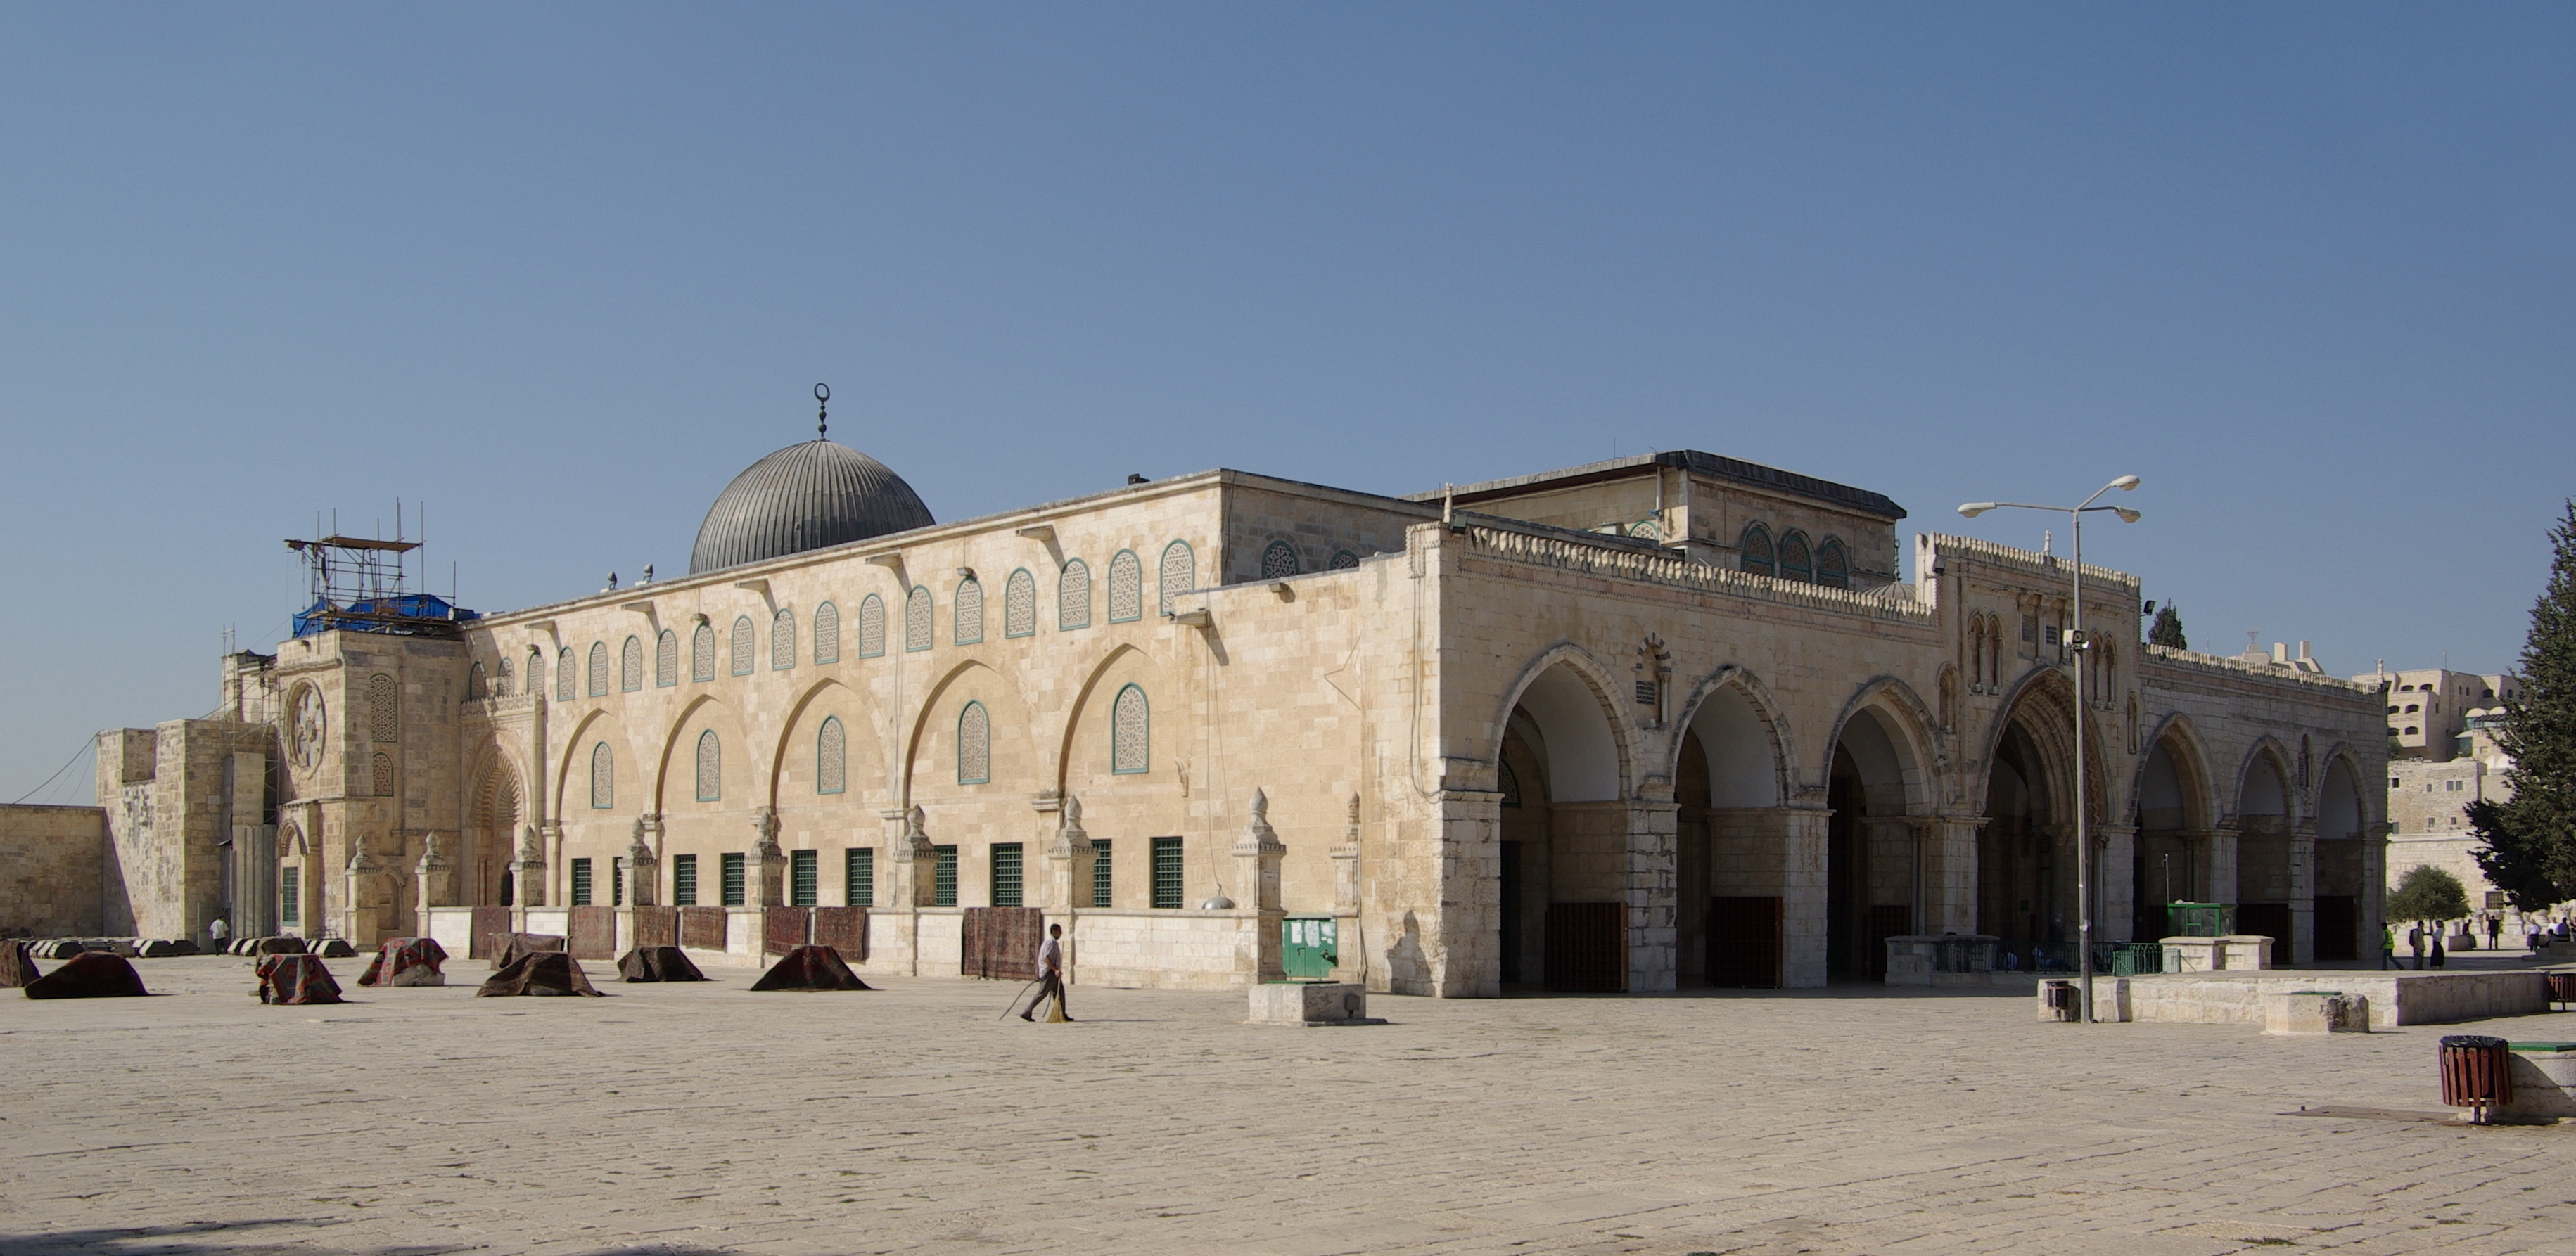 HQ Al-Aqsa Mosque Wallpapers | File 2213.33Kb